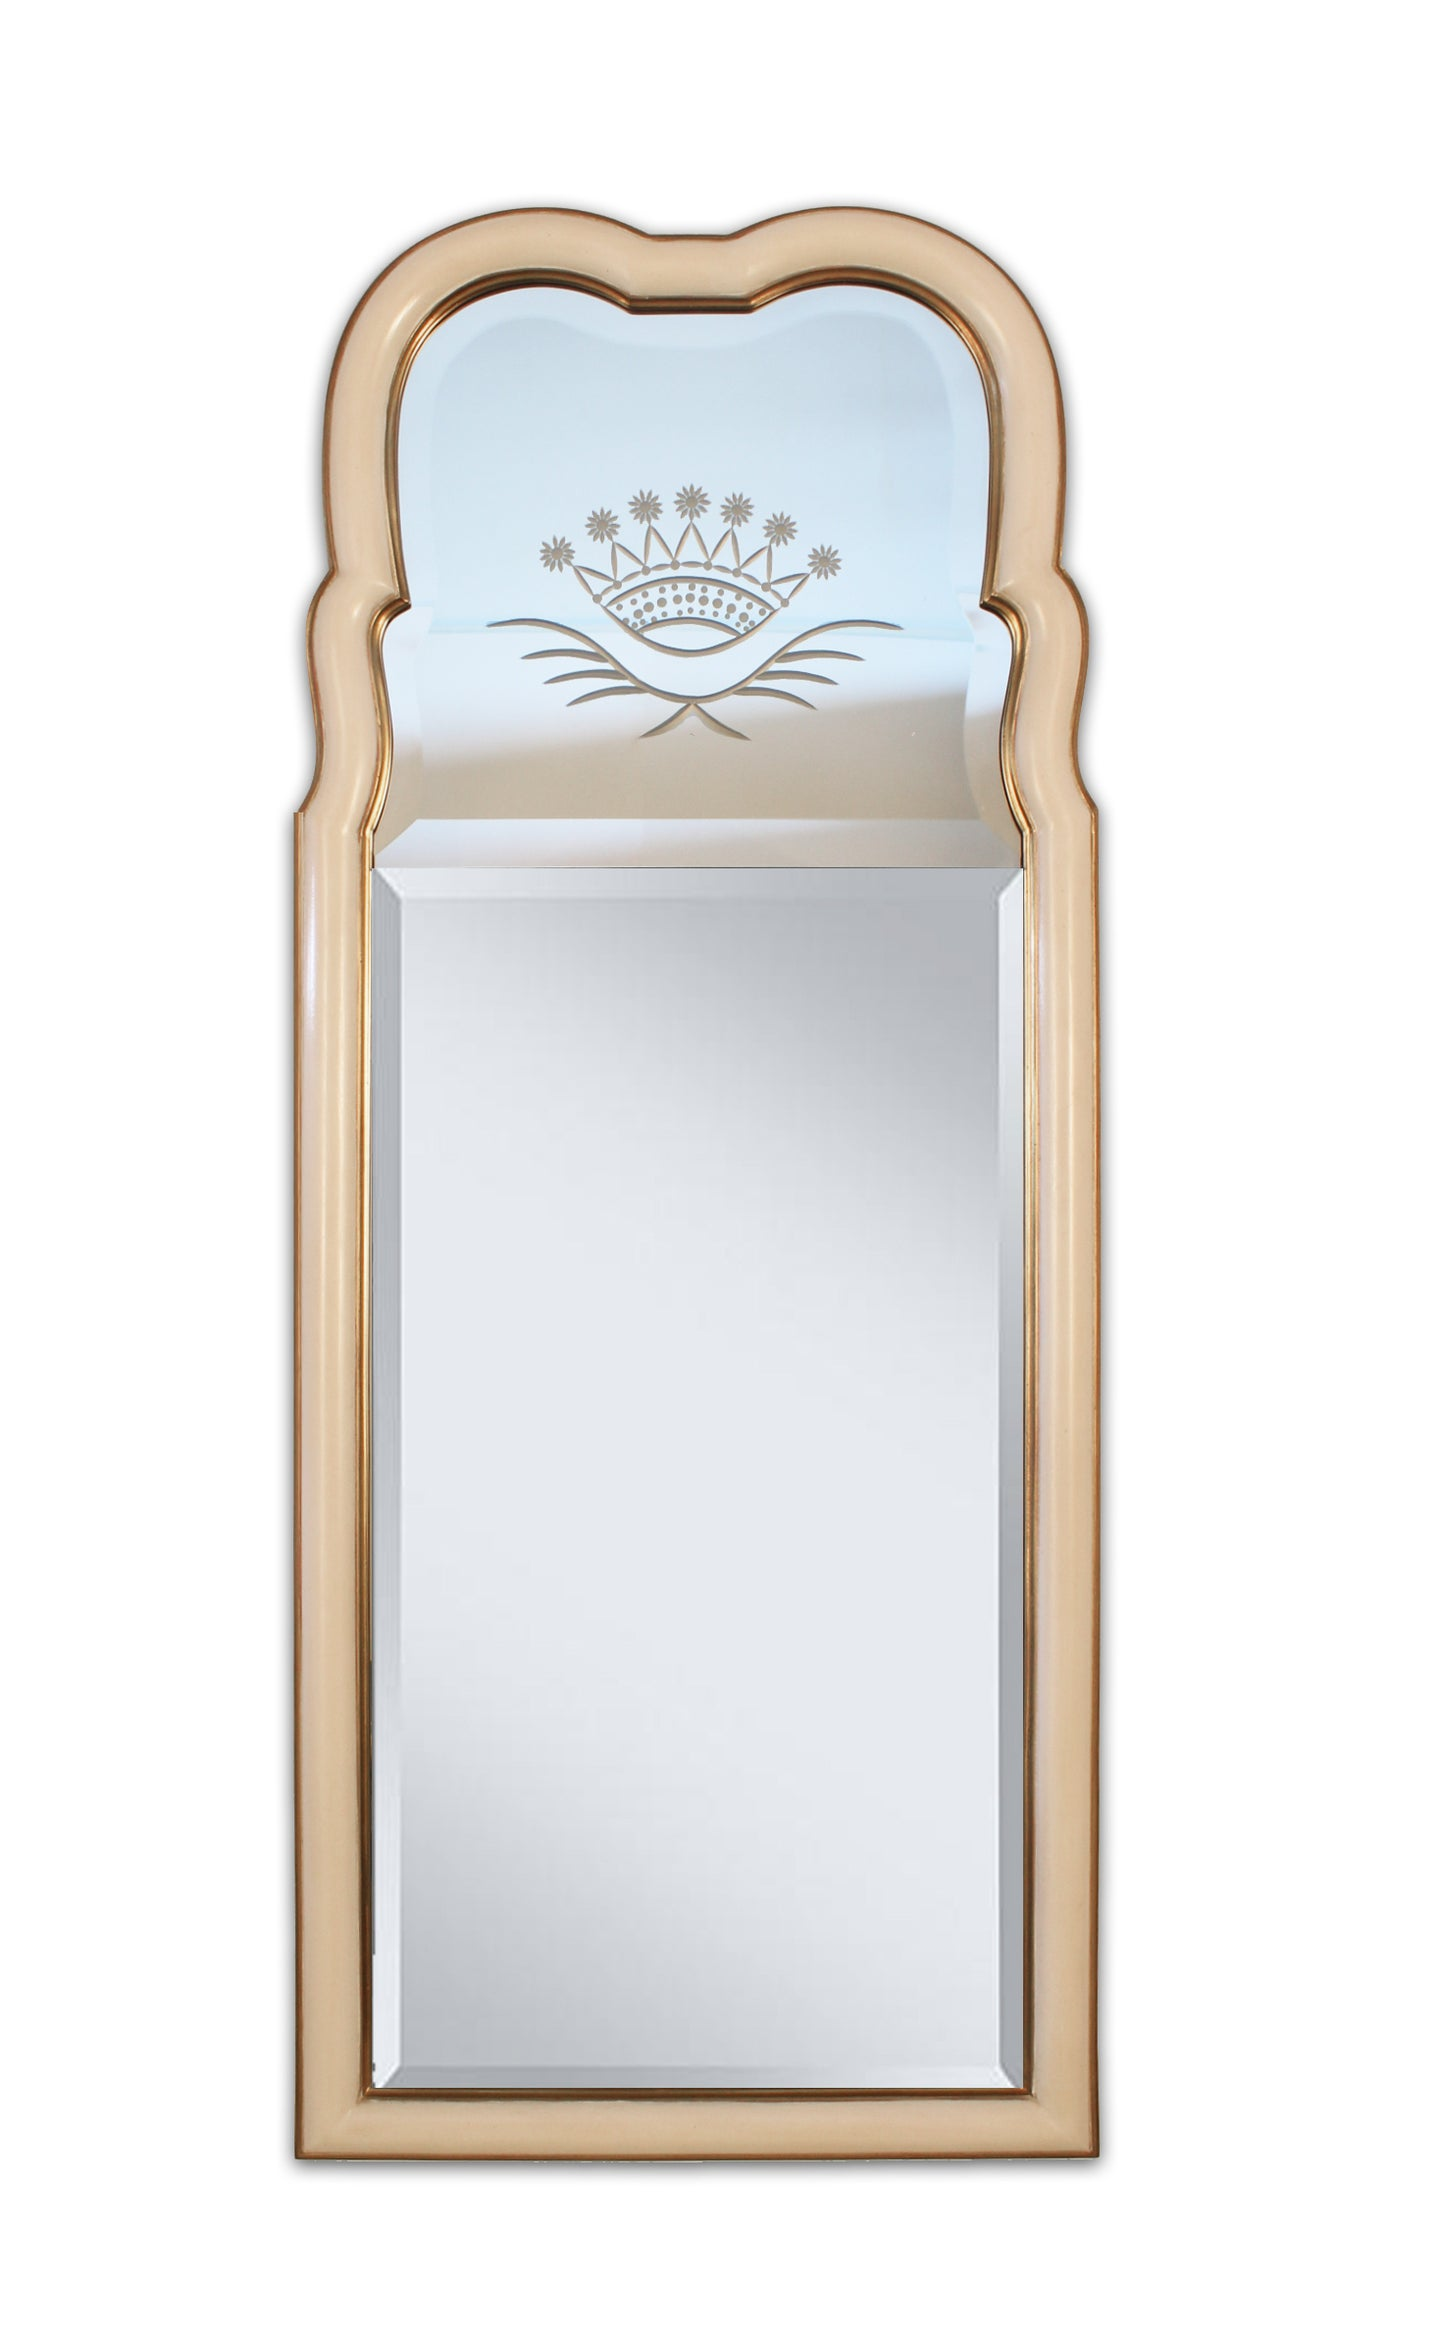 Queen Anne Style Mirror